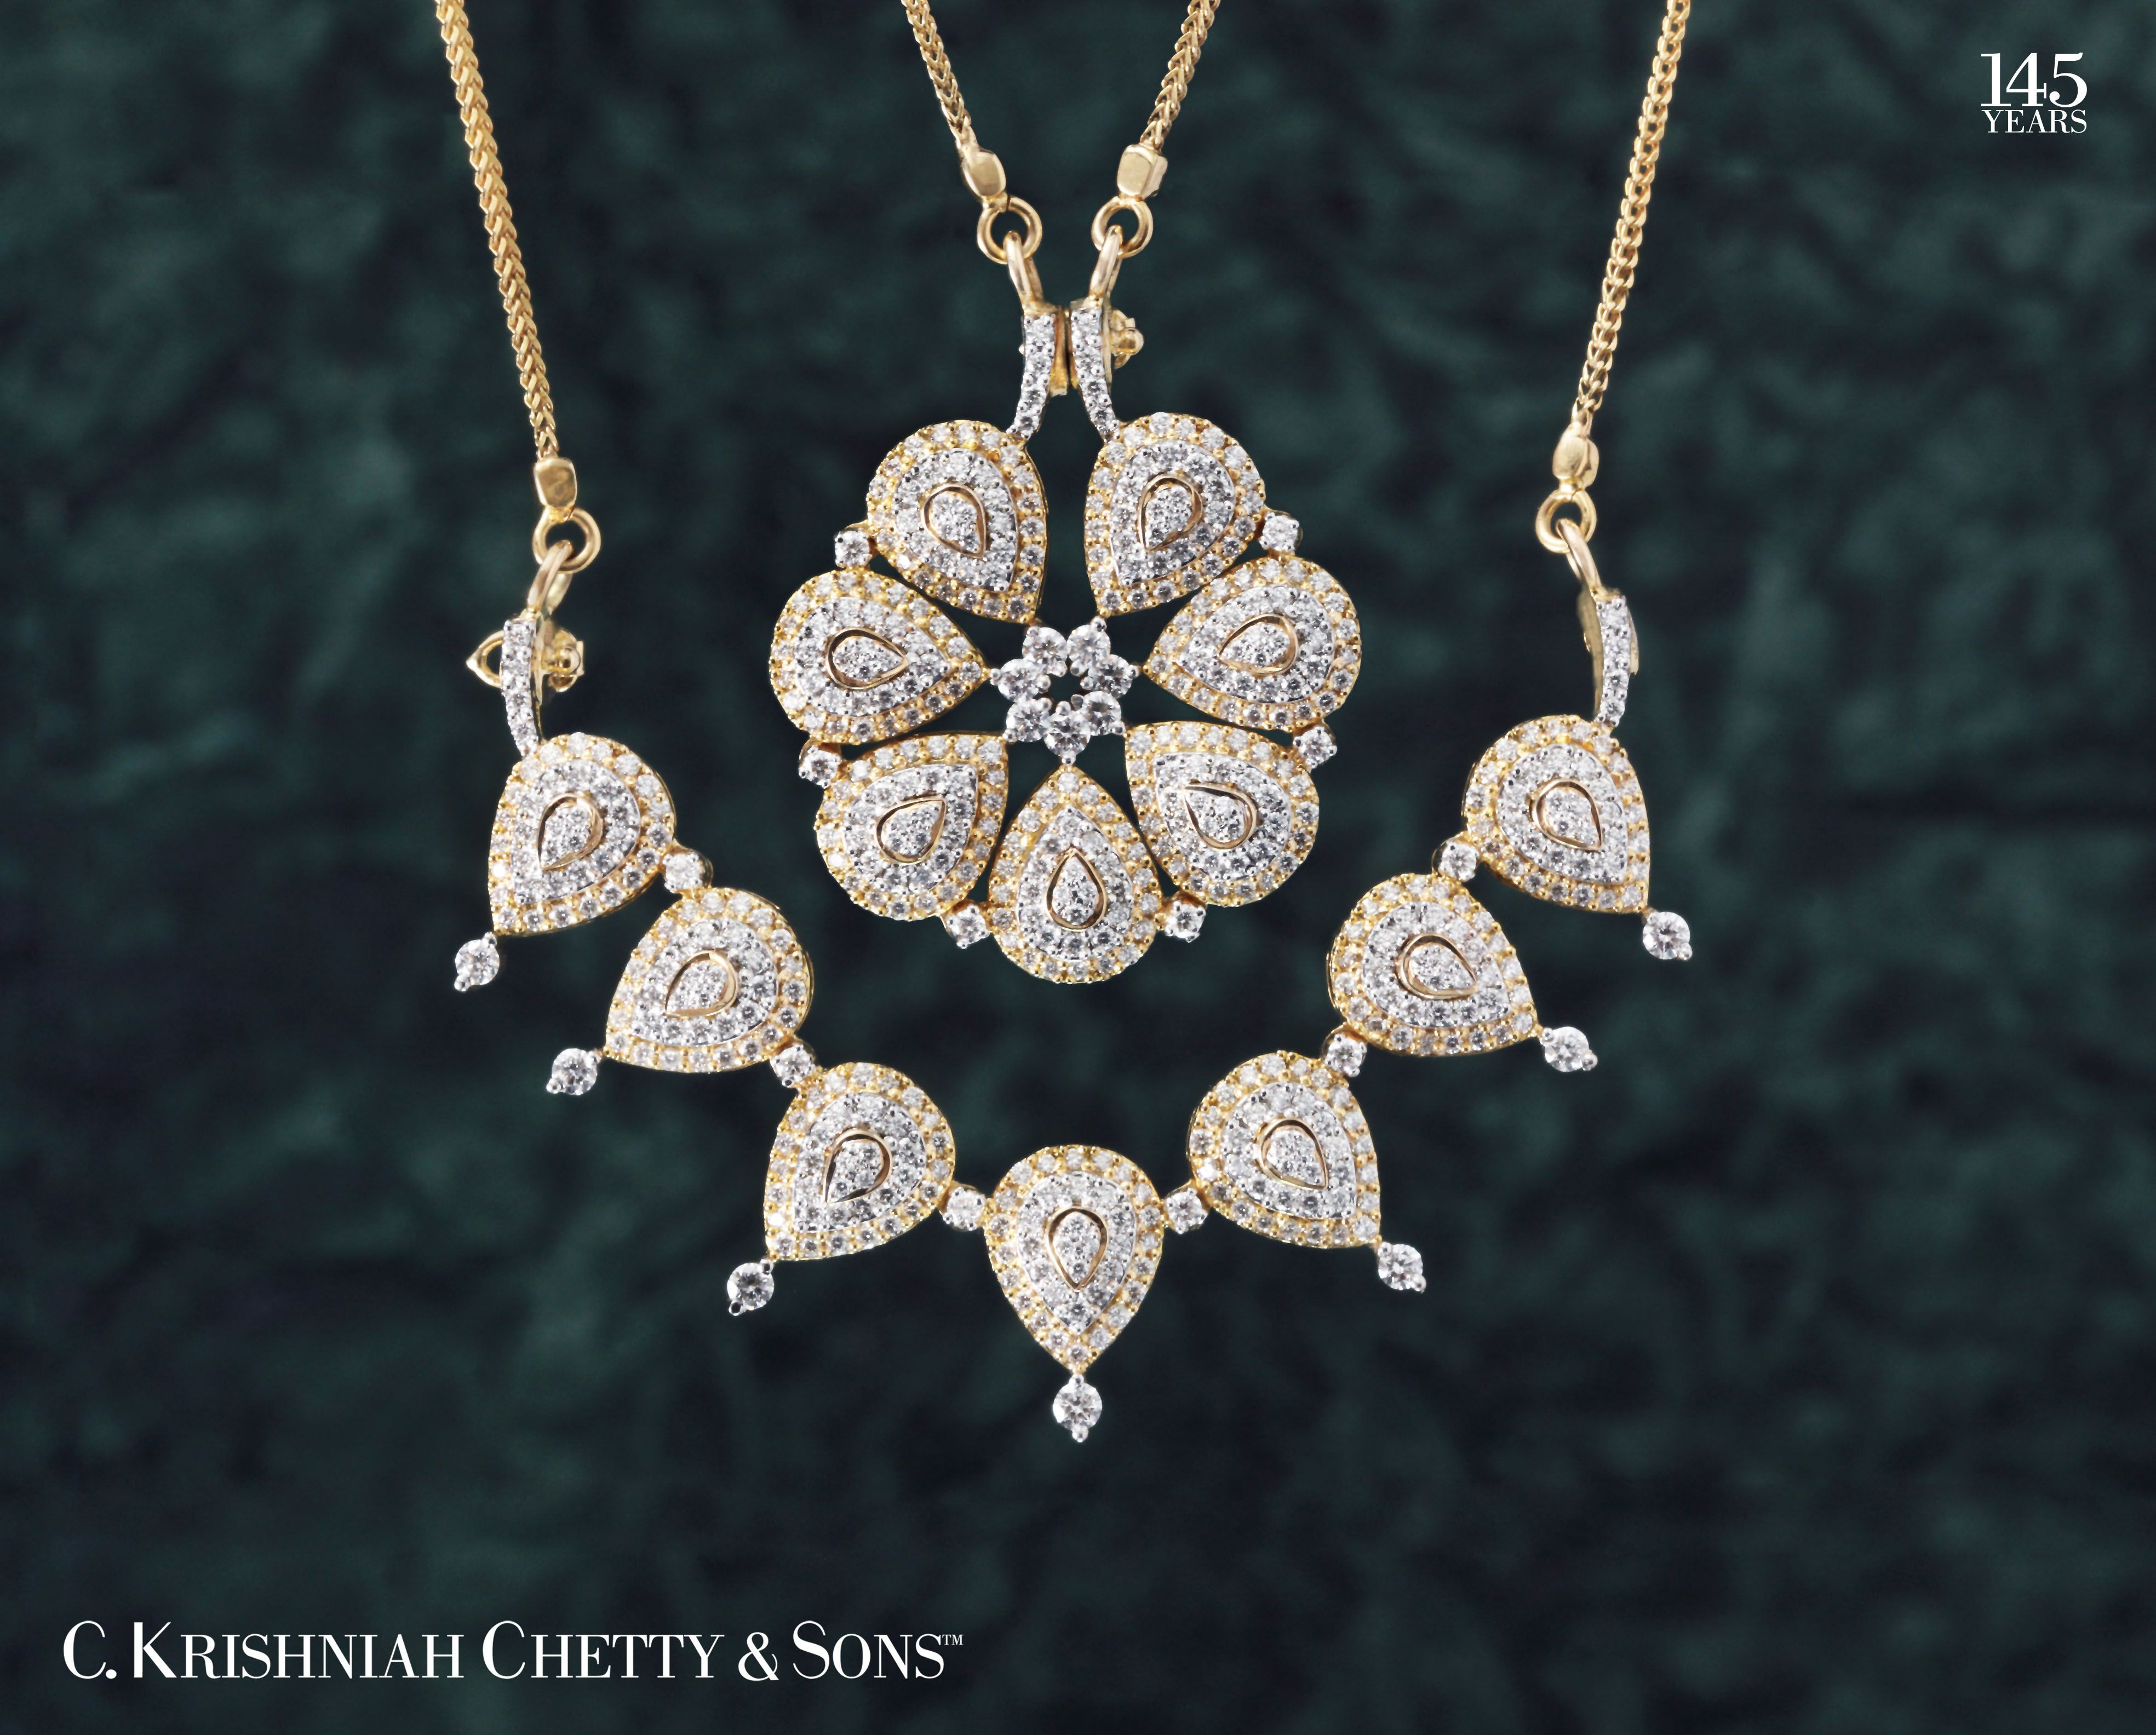 Go as you like Magnetic diamond necklace can be worn in two